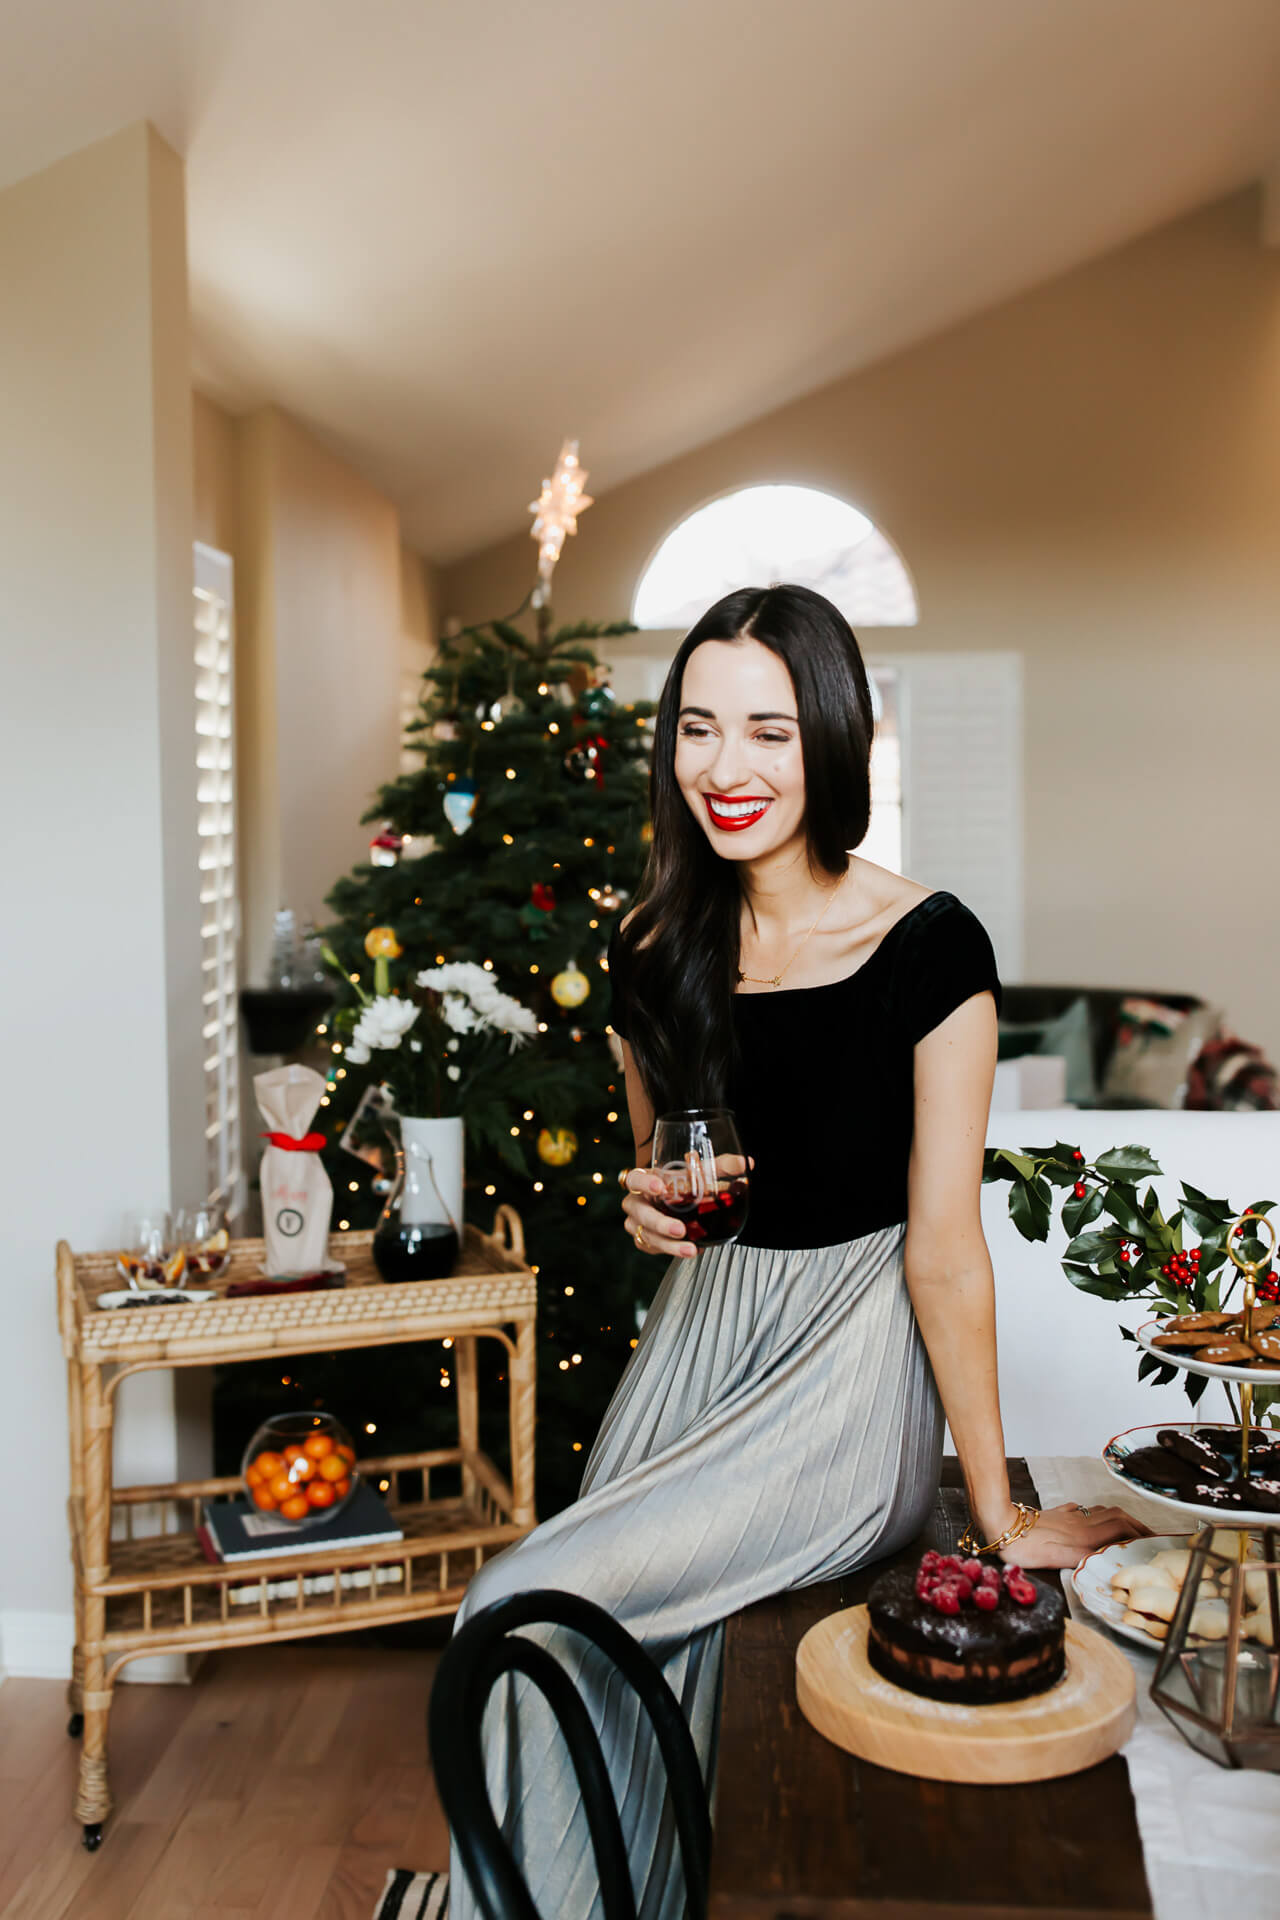 Sharing my favorite gifts of this season